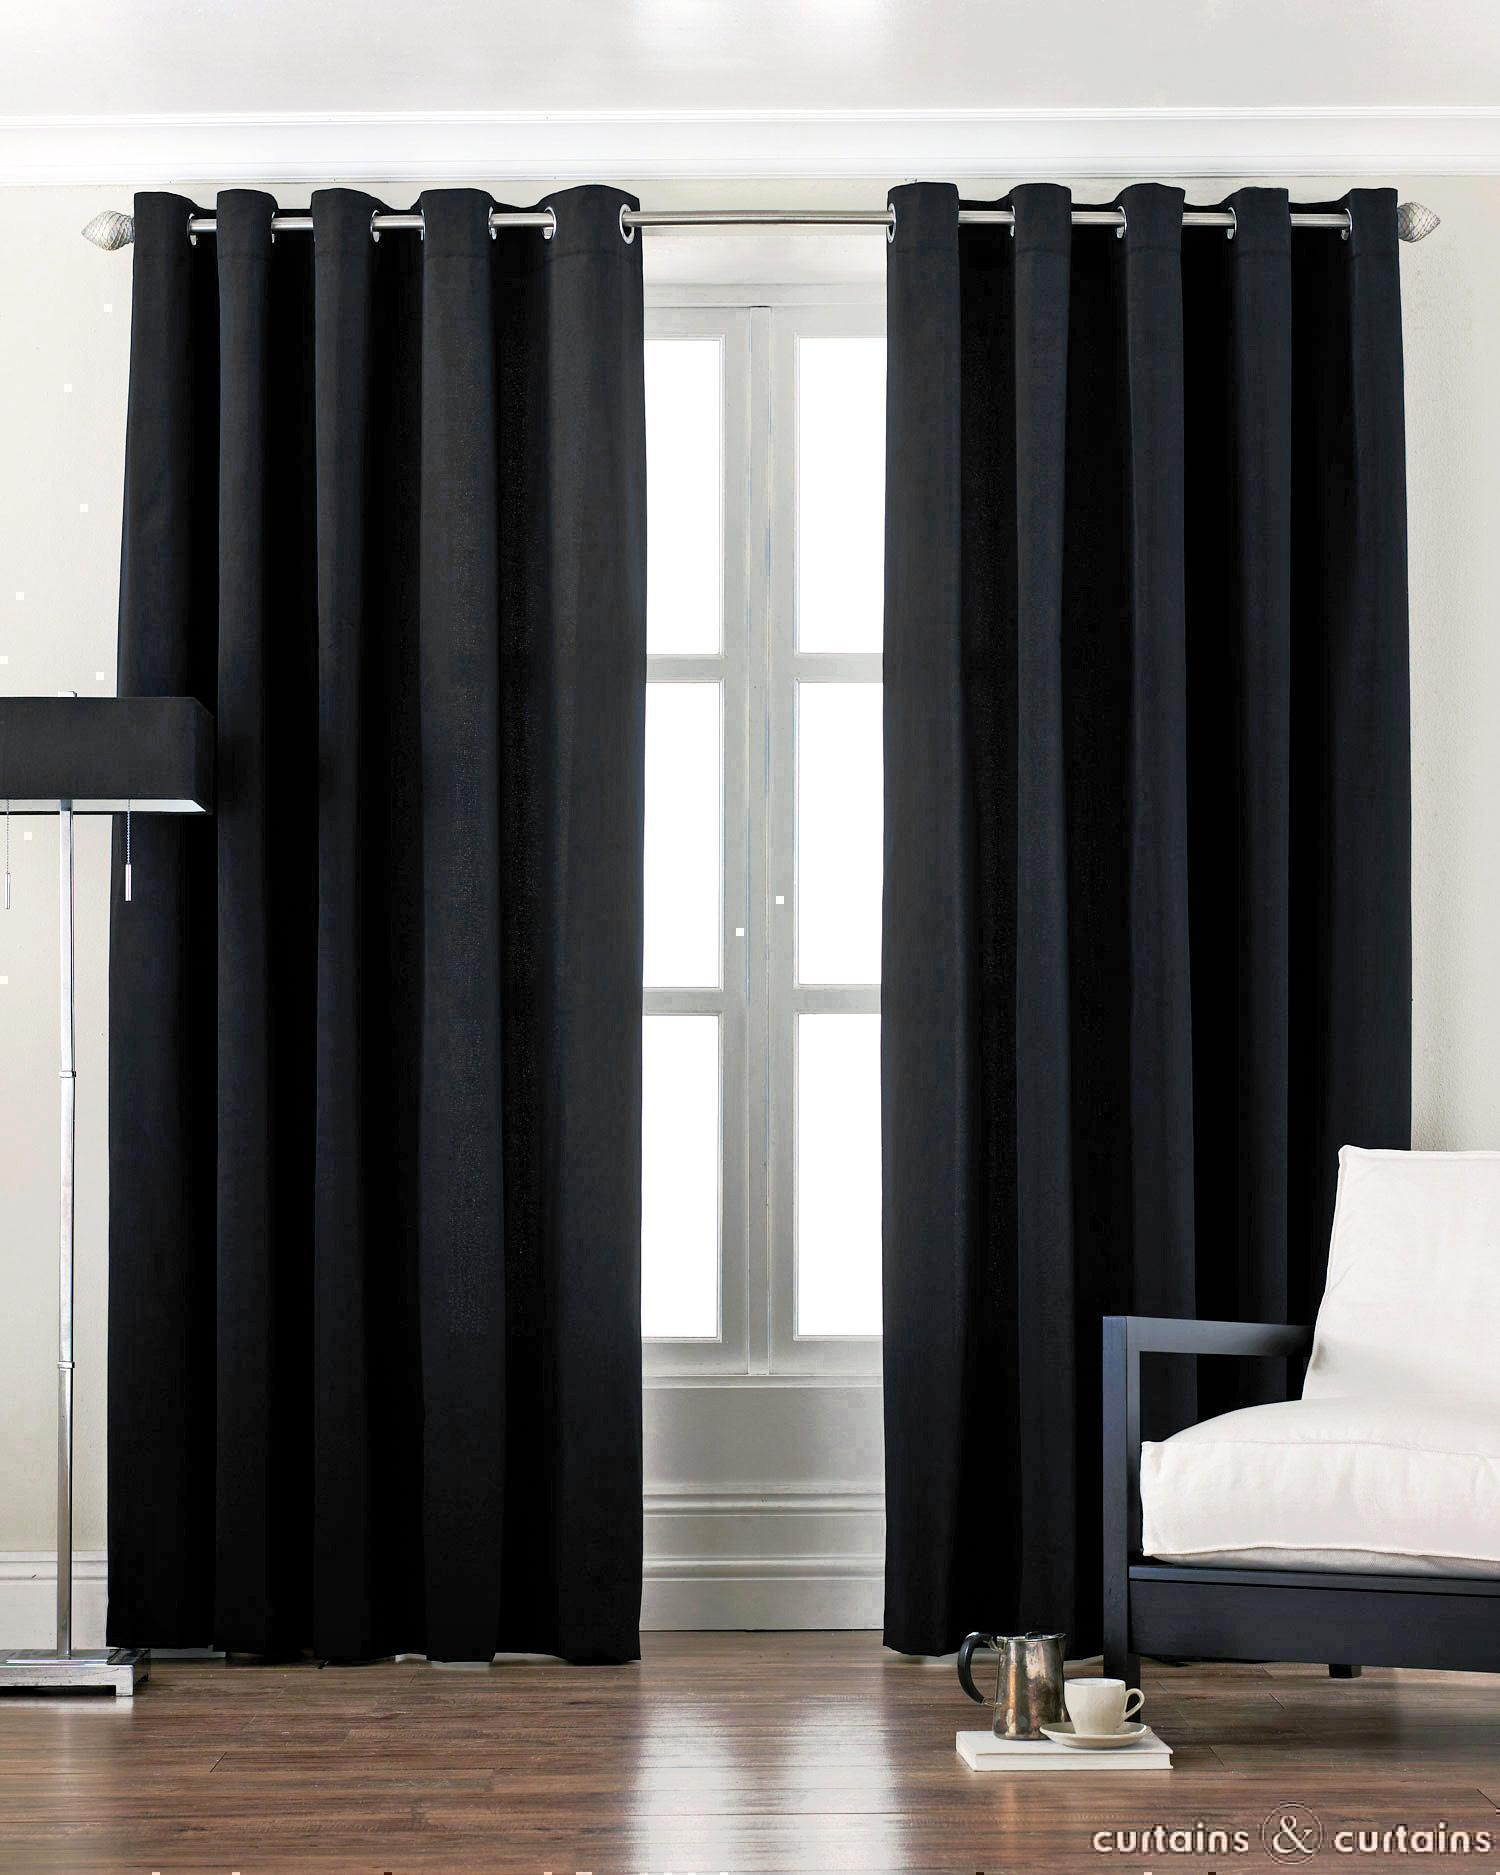 Bedroom curtains with valance large and beautiful photos for Bedroom curtains designs in pakistan